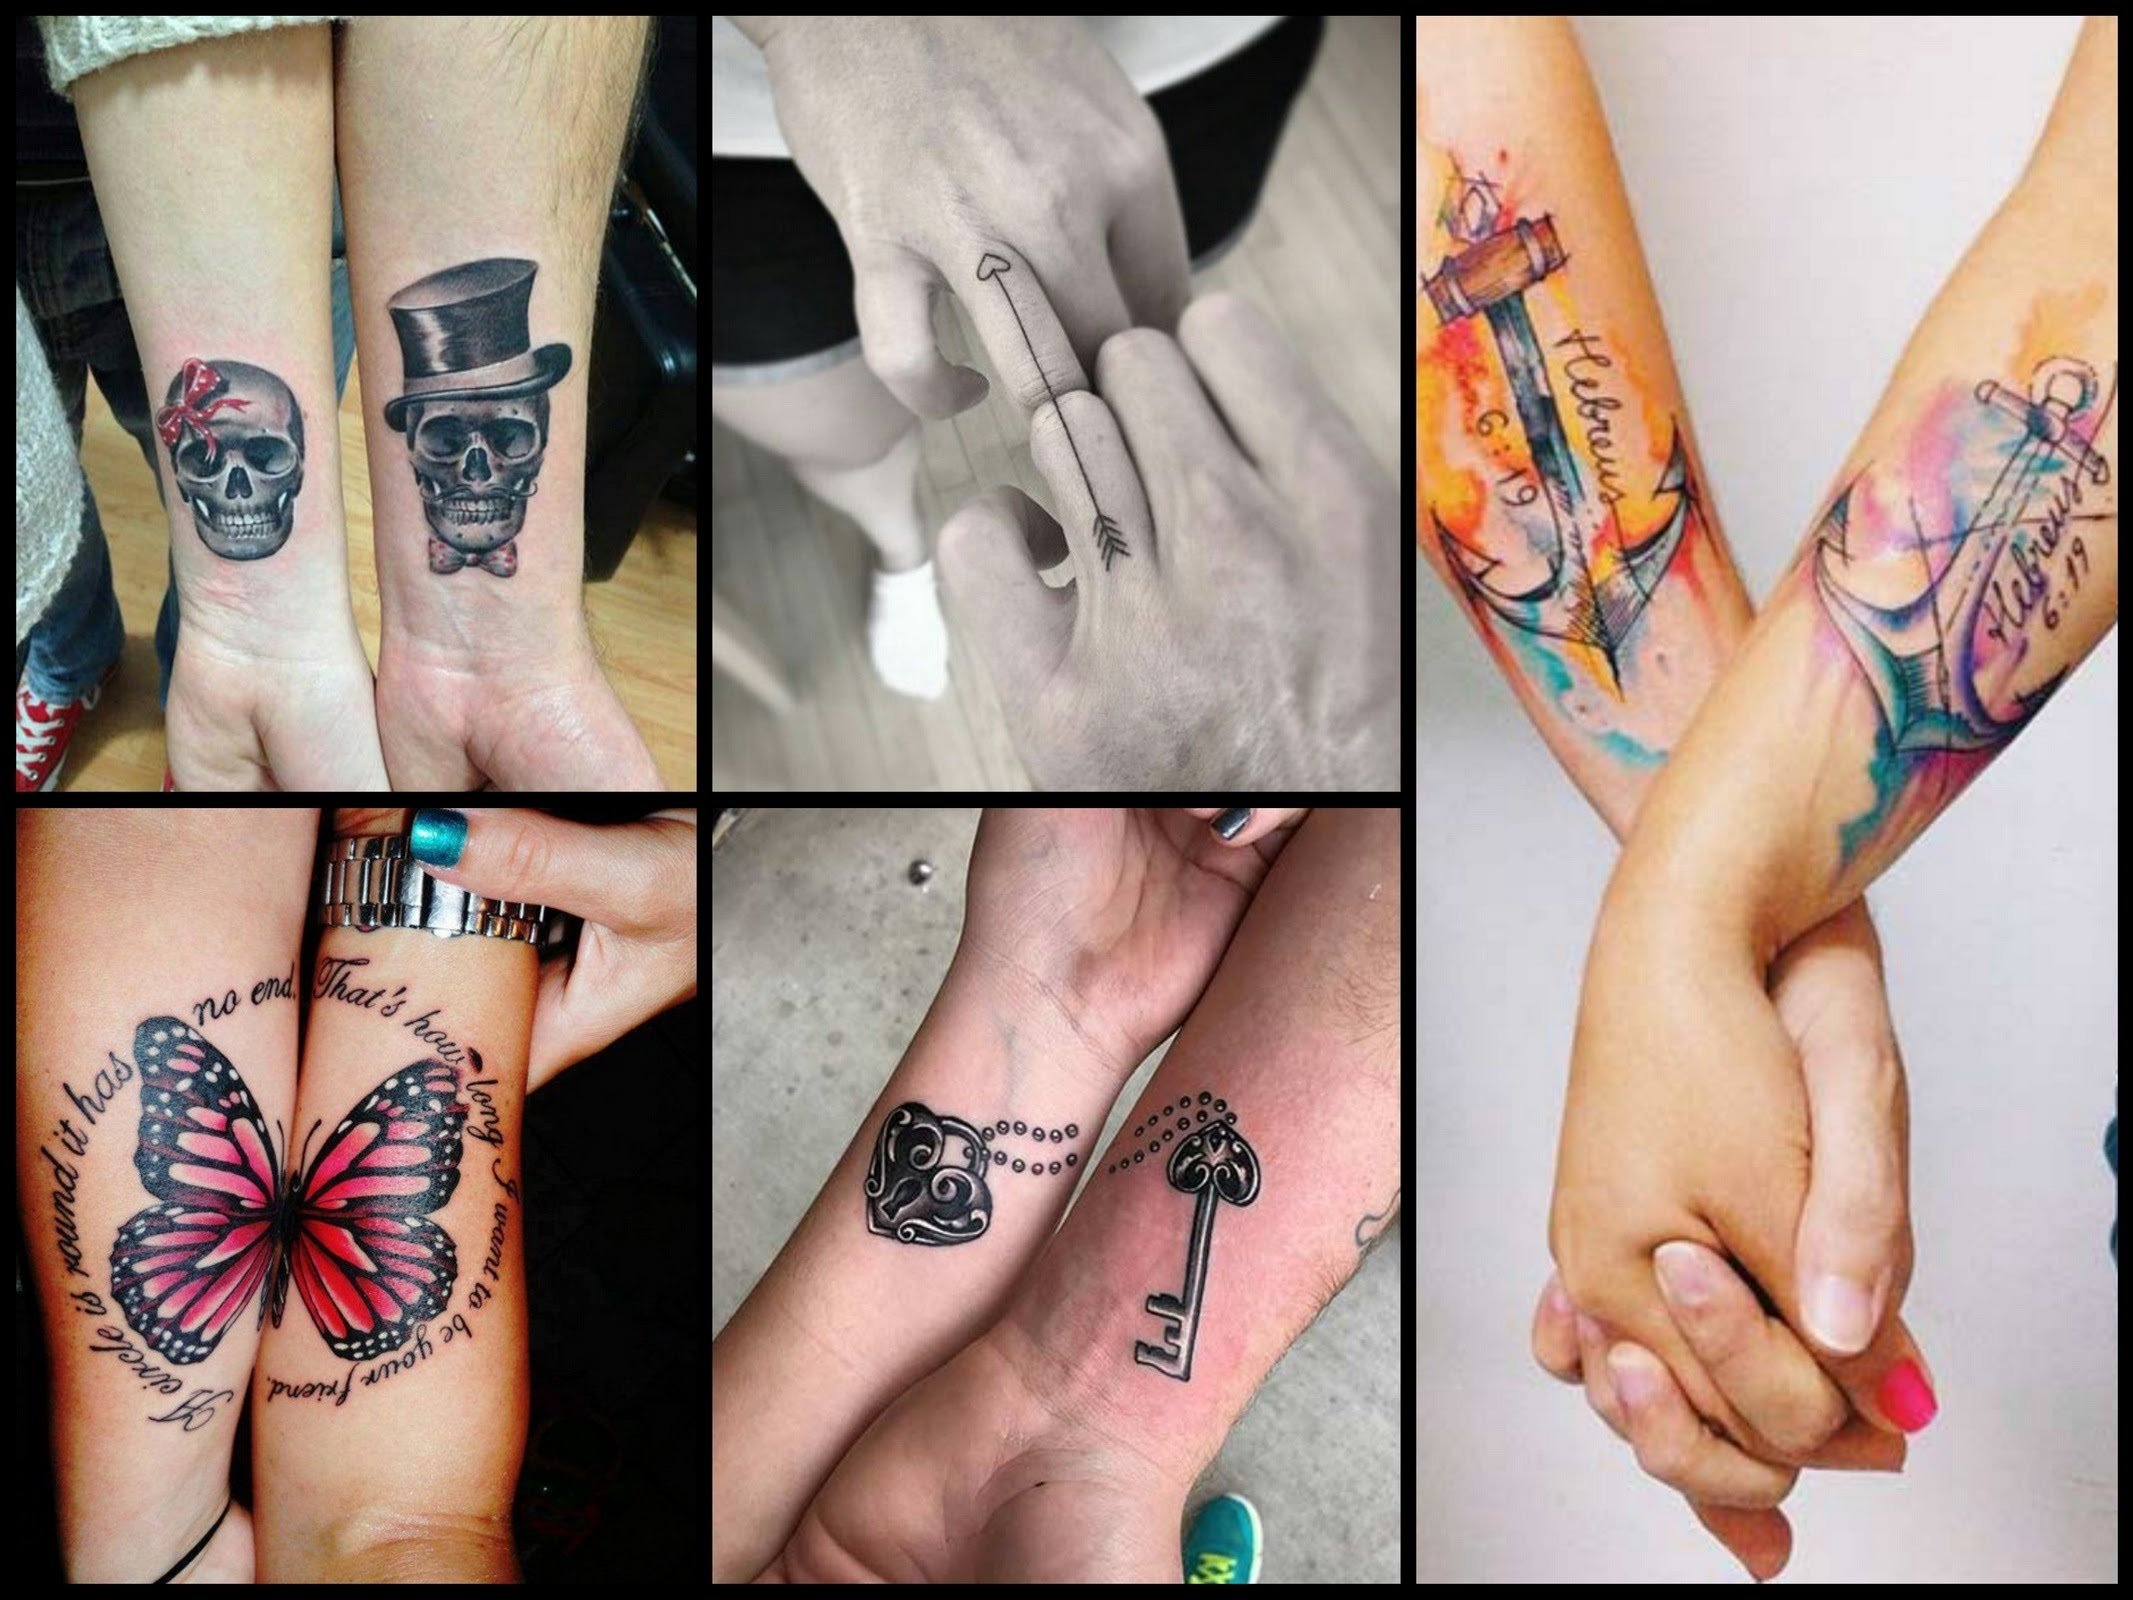 10 Stylish His And Her Matching Tattoos Ideas 30 best couple tattoo ideas youtube 3 2020